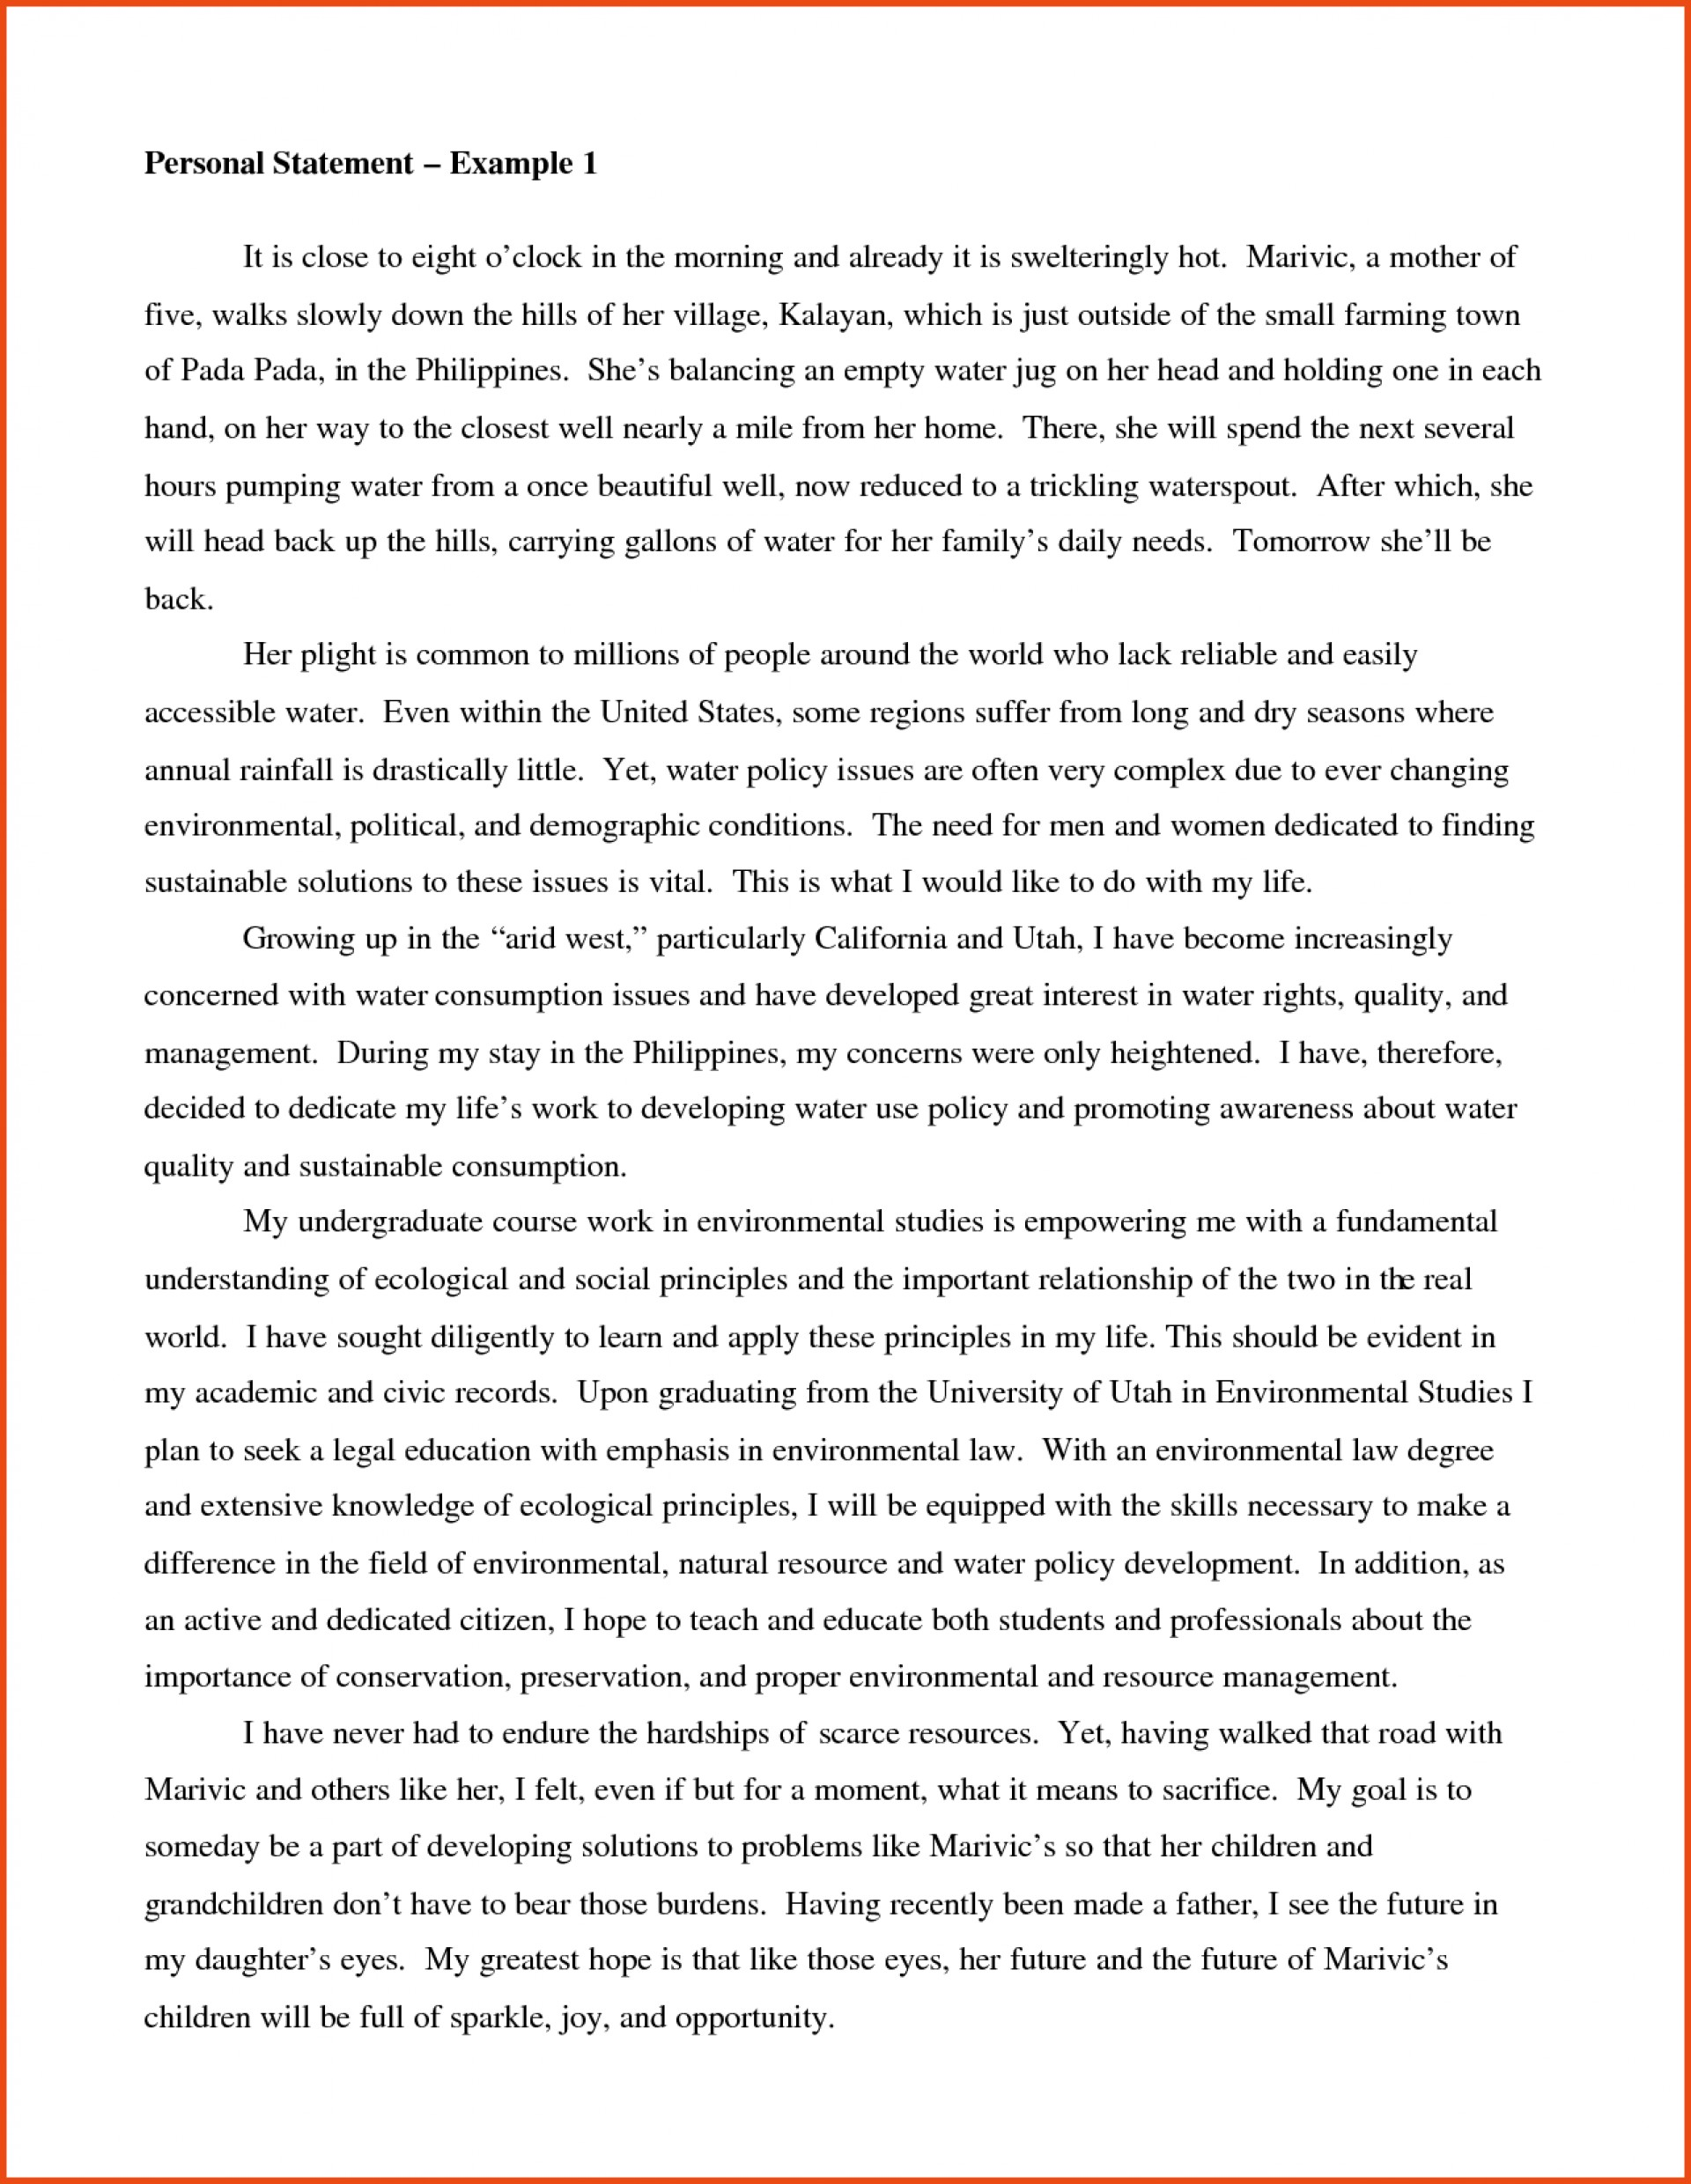 007 Essay Example Uc Essays Examples Aka Personal Insight Questions Prompt Statement Gre Writing For 5th Grade Middle School College 4th High Frightening Prompts Transfer 2017 Collegevine 1920